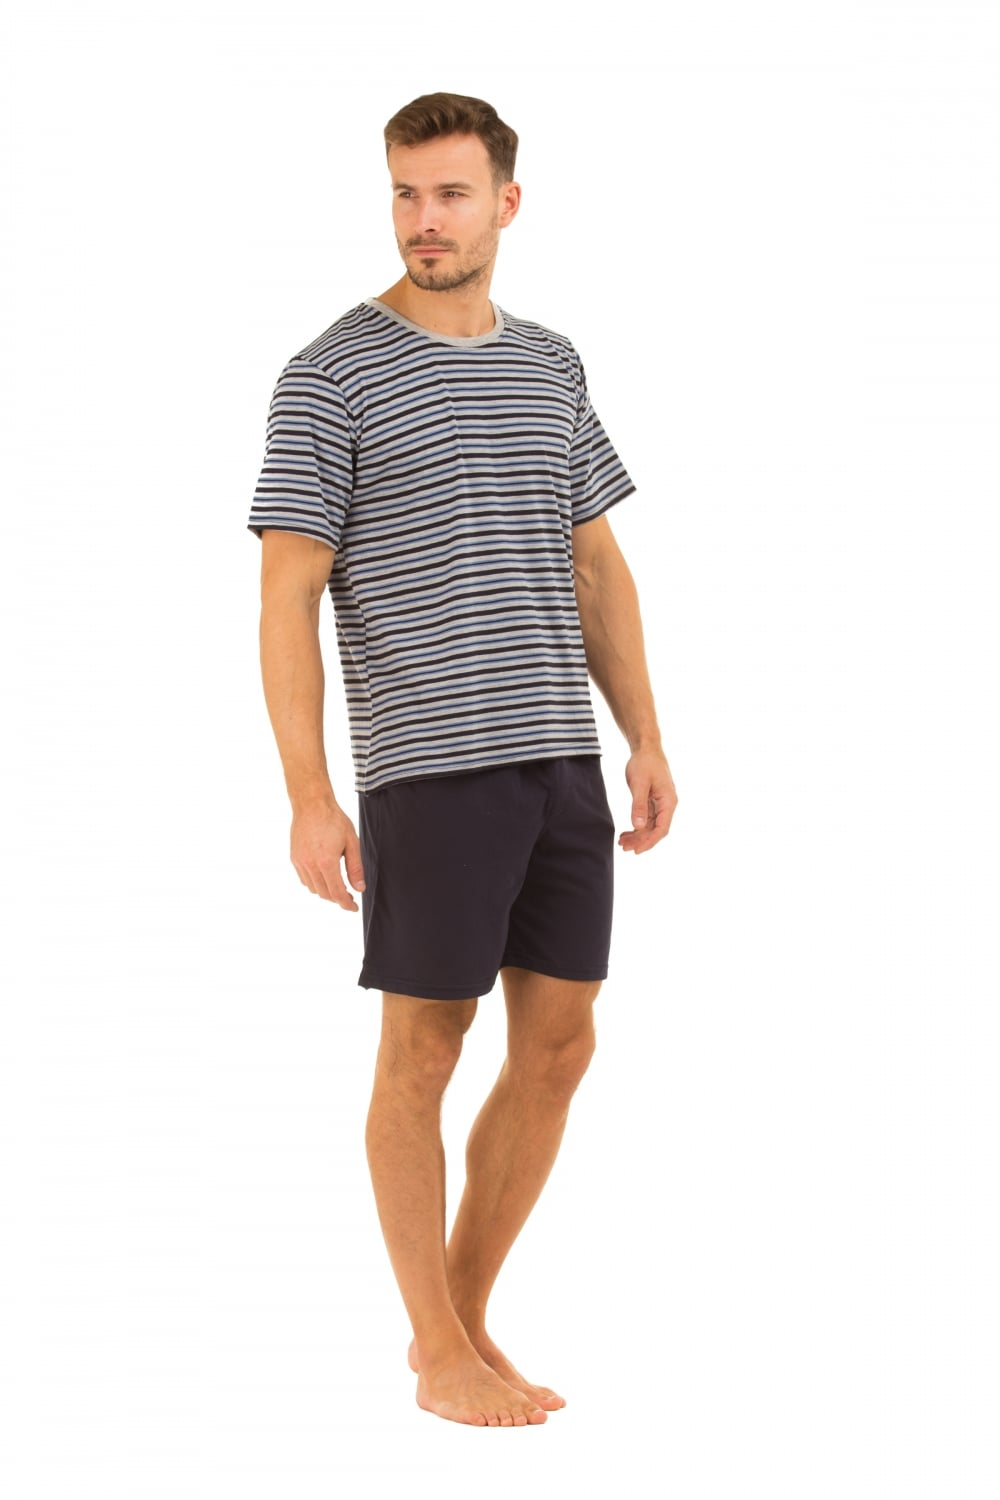 Shop Brooks Brothers men's sleepwear sale and take advantage of discount prices on a great selection of pajamas, nightshirts, robes, and slippers.